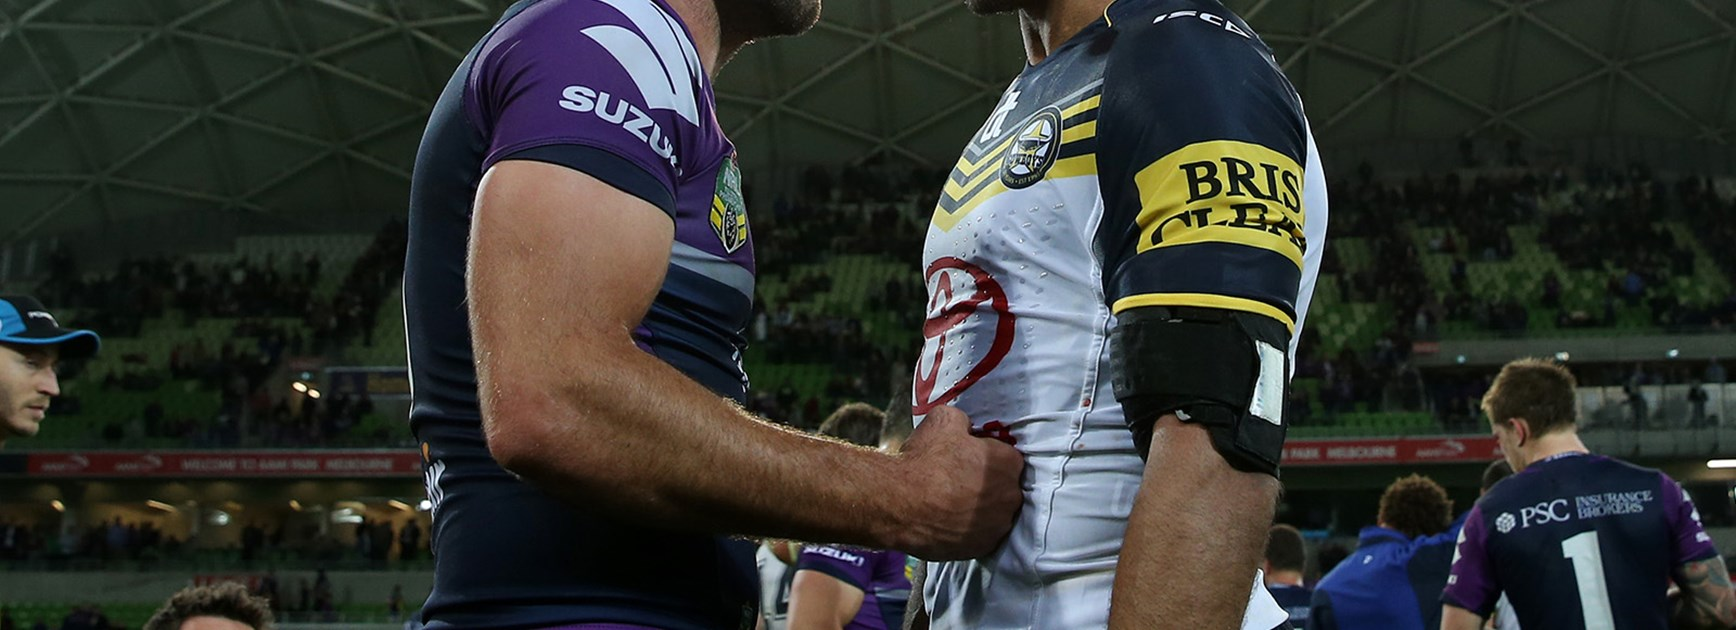 Great mates Cam Smith and Johnathan Thurston share a moment after their Preliminary Final.